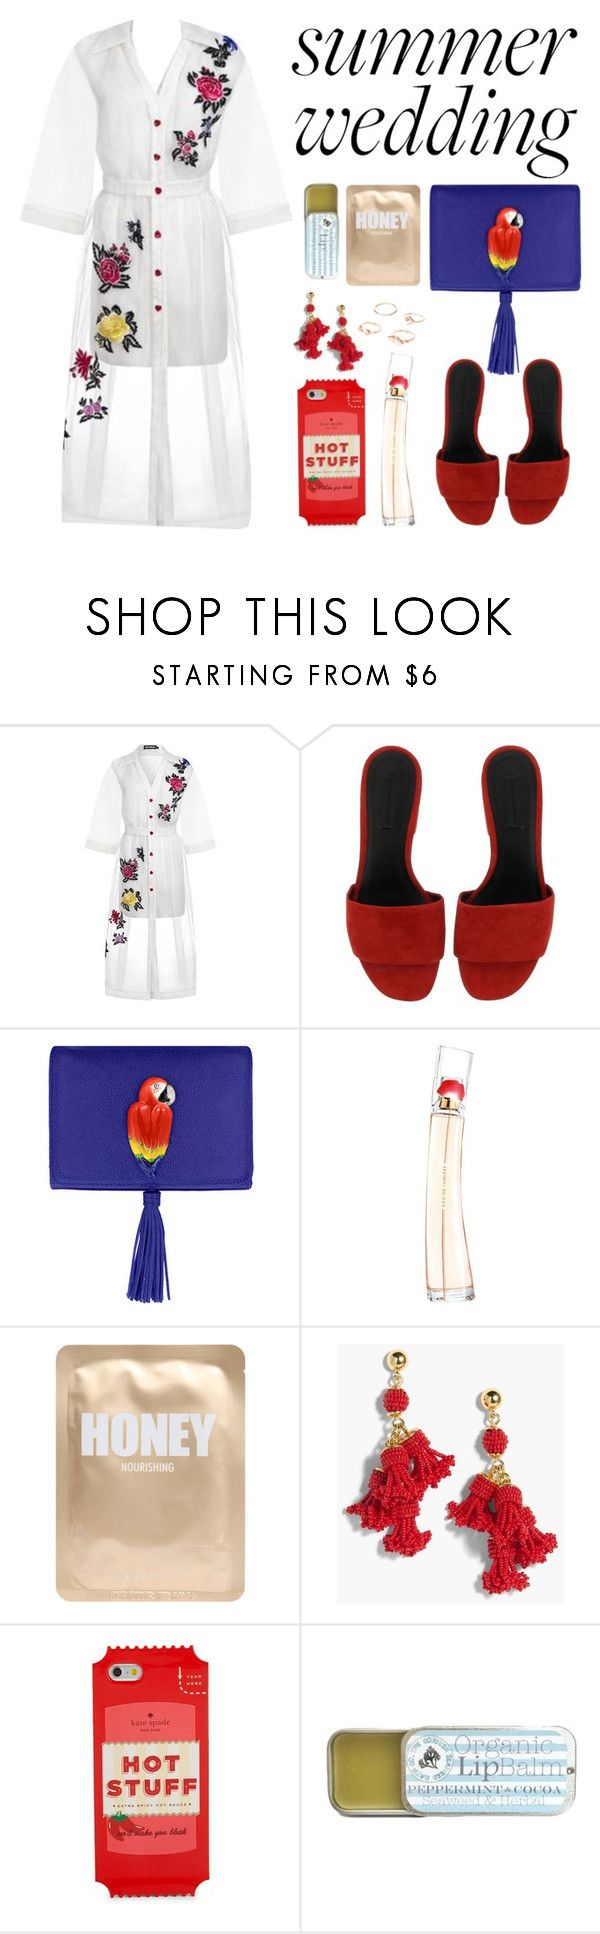 """""""#summerwedding"""" by faye-valentine on Polyvore featuring House of Holland, Alexander Wang, Nach Bijoux, Kenzo, Lapcos, J.Crew and Kate Spade"""